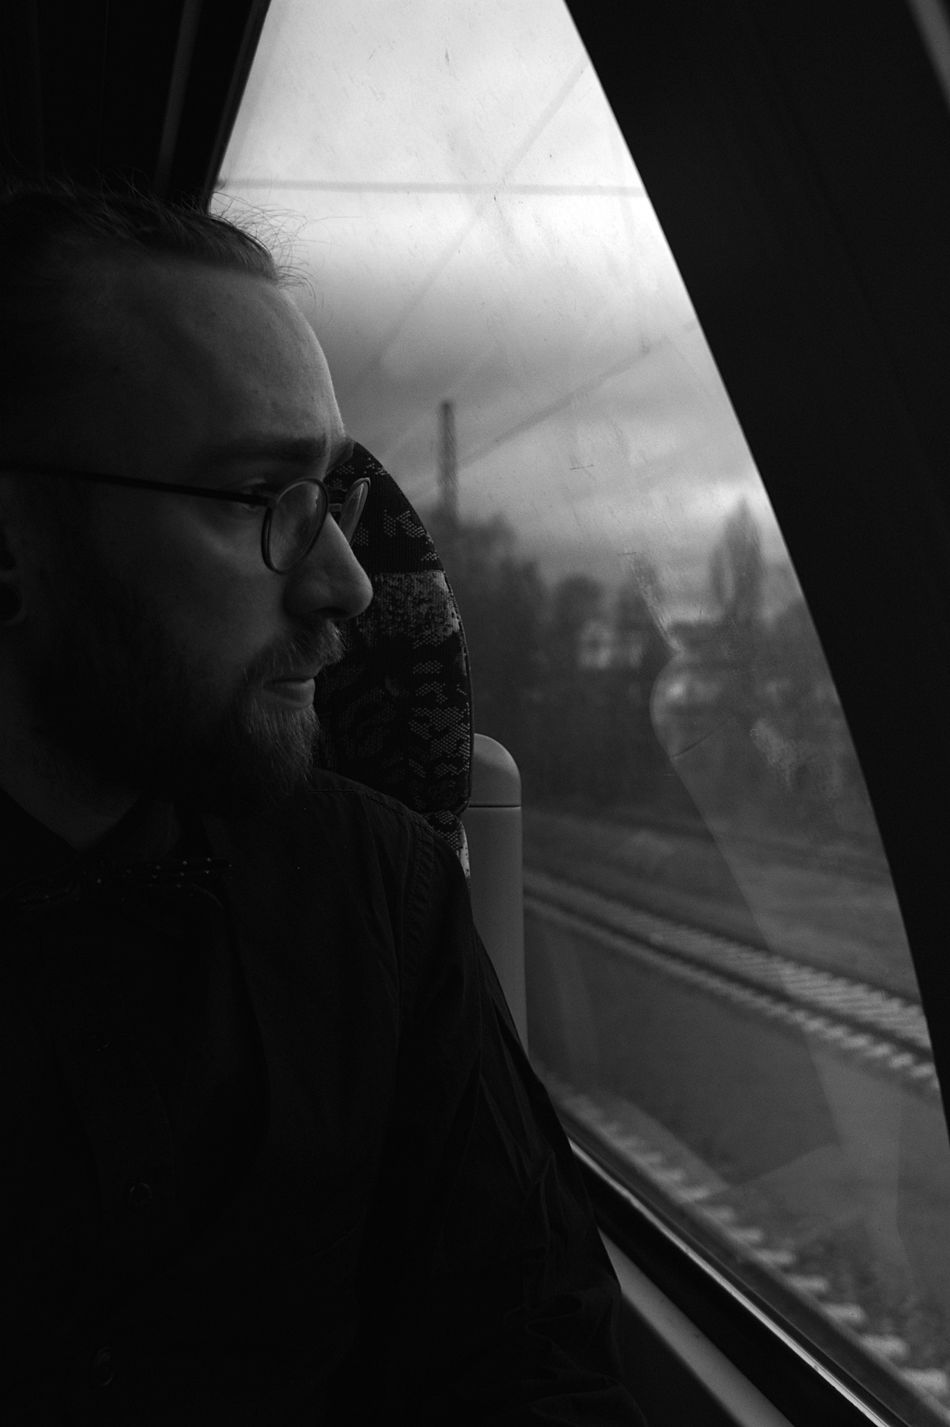 Adult Adults Only Blackandwhite Photography Close-up Contemplation Day Indoors  Men One Man Only One Person Pensive People Sitting Sky Thinking Train Ride Waiting Window Young Adult Welcome To Black